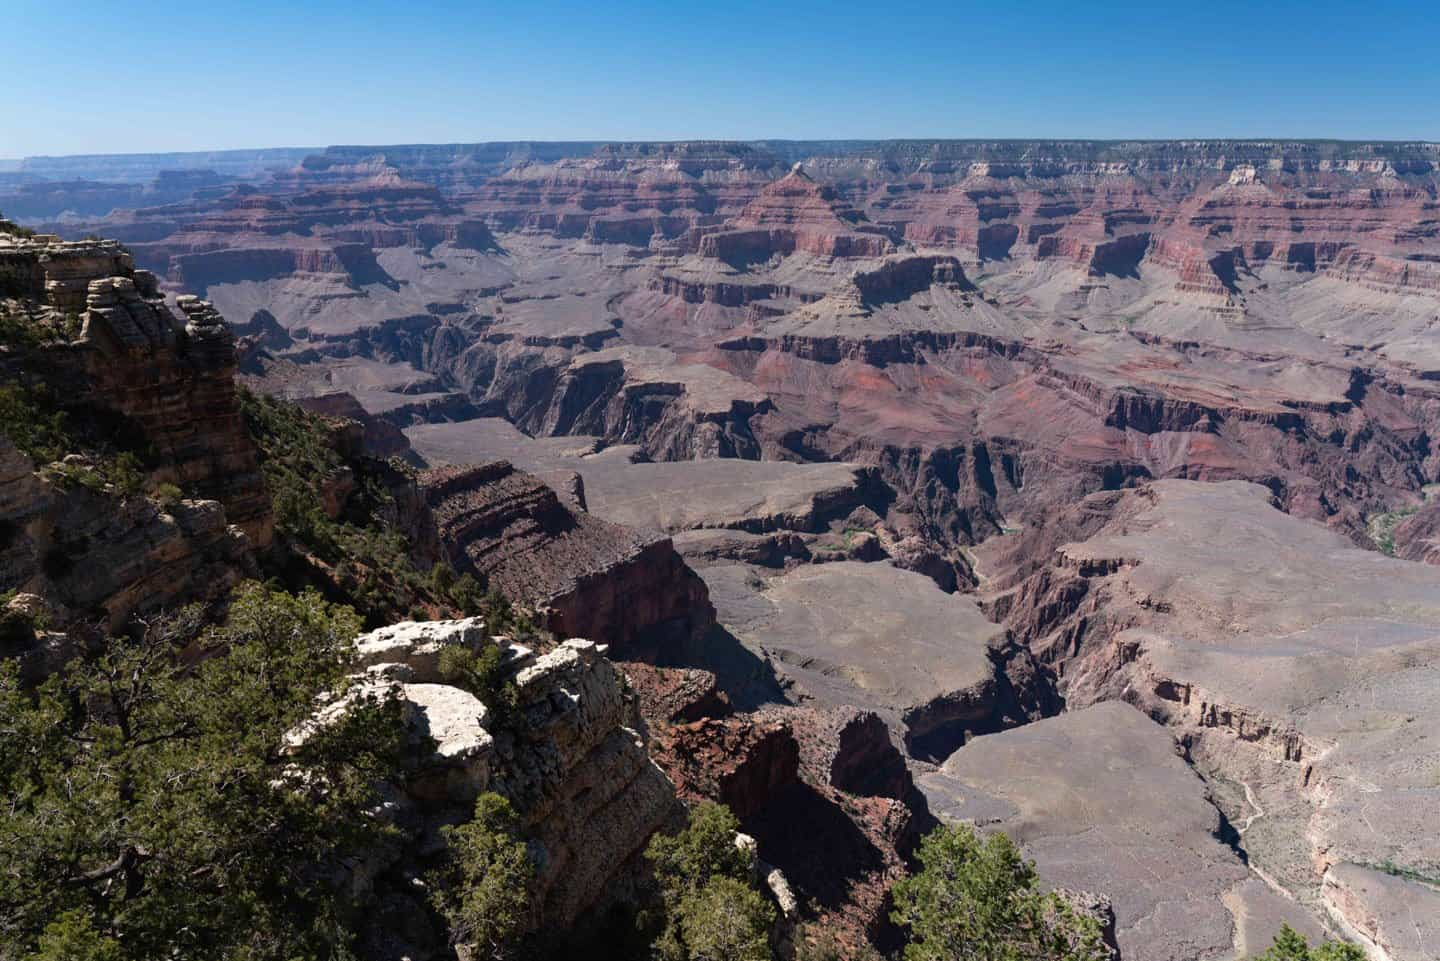 The view from Mather Point near the Grand Canyon Village.